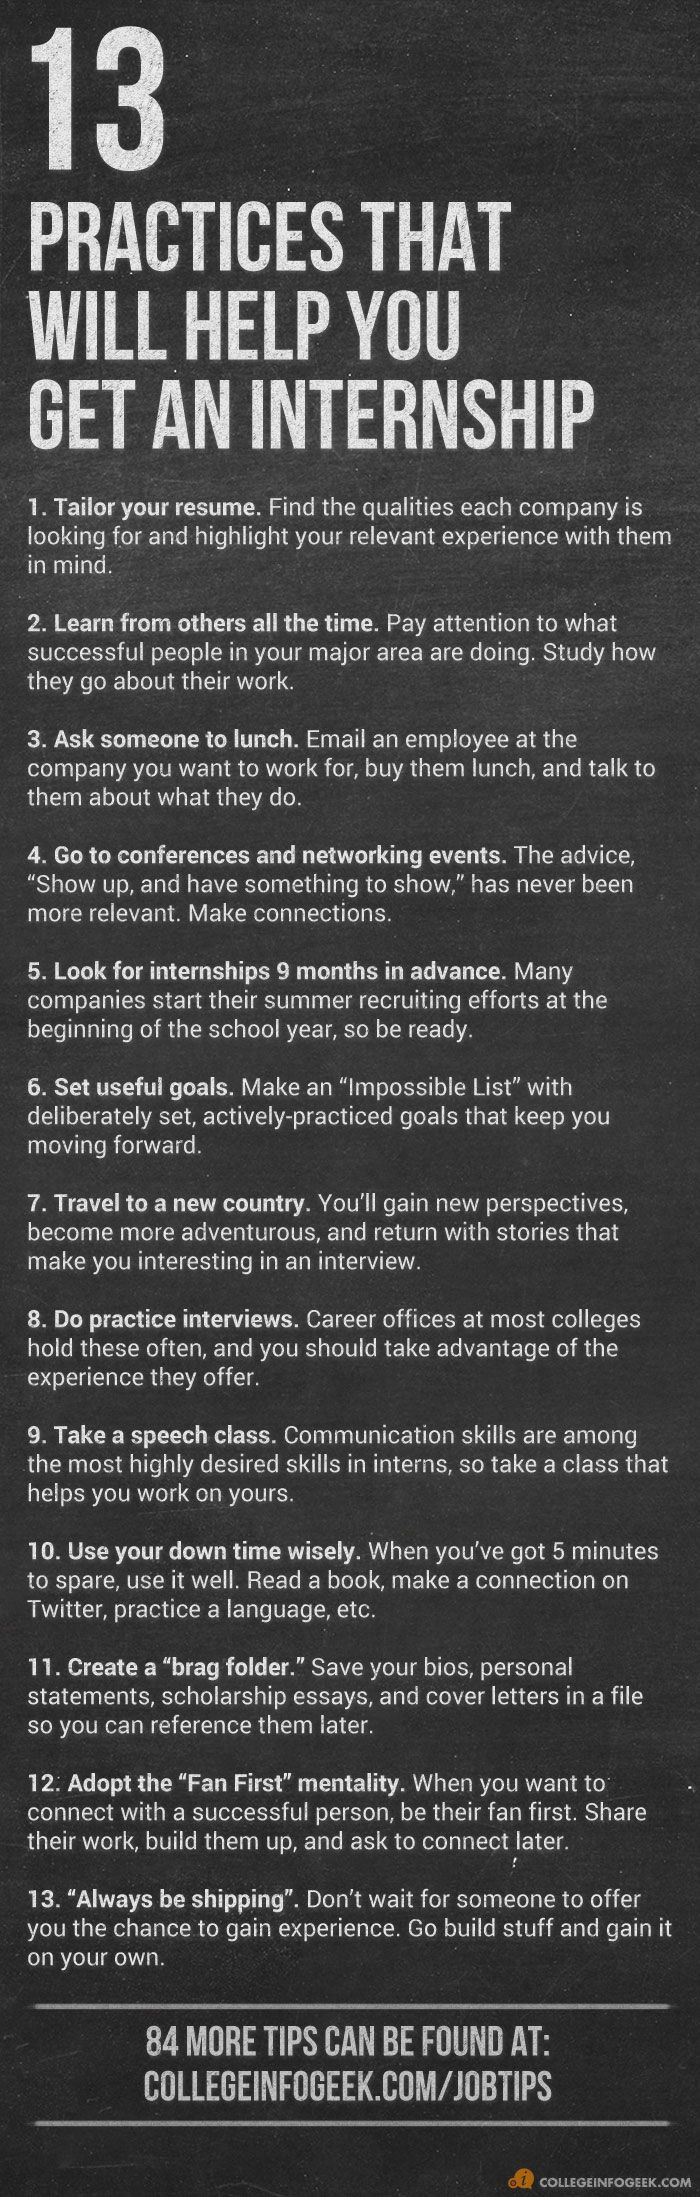 College Resume Tips New 64 Best College Tips Images On Pinterest  Gym Colleges And Learning